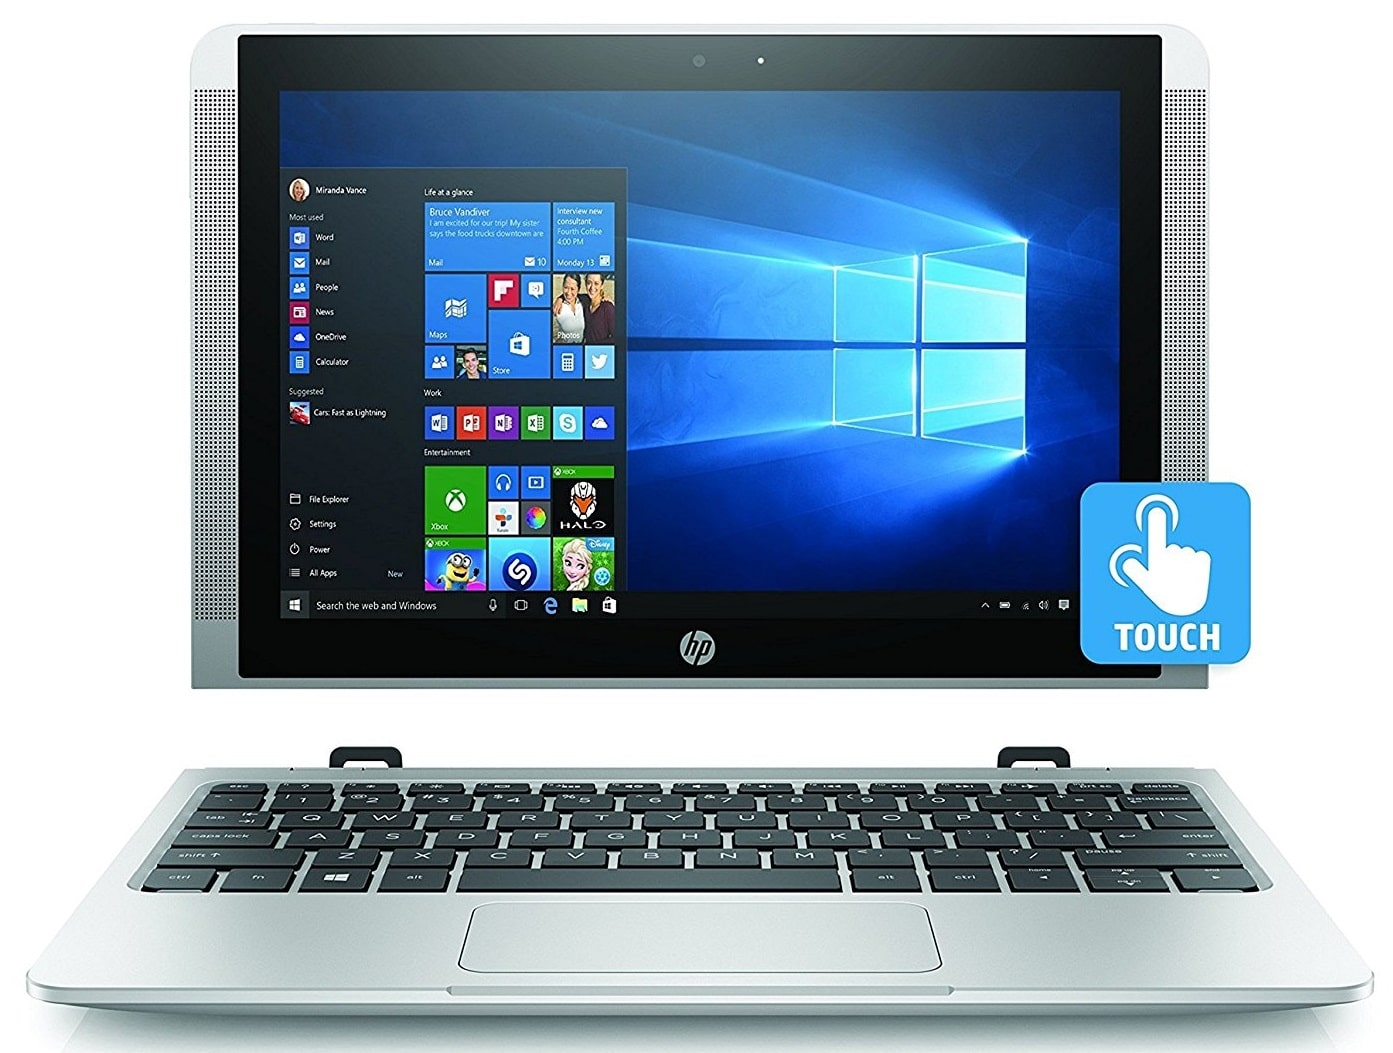 HP x2 10-p000na laptop under 300 pounds uk